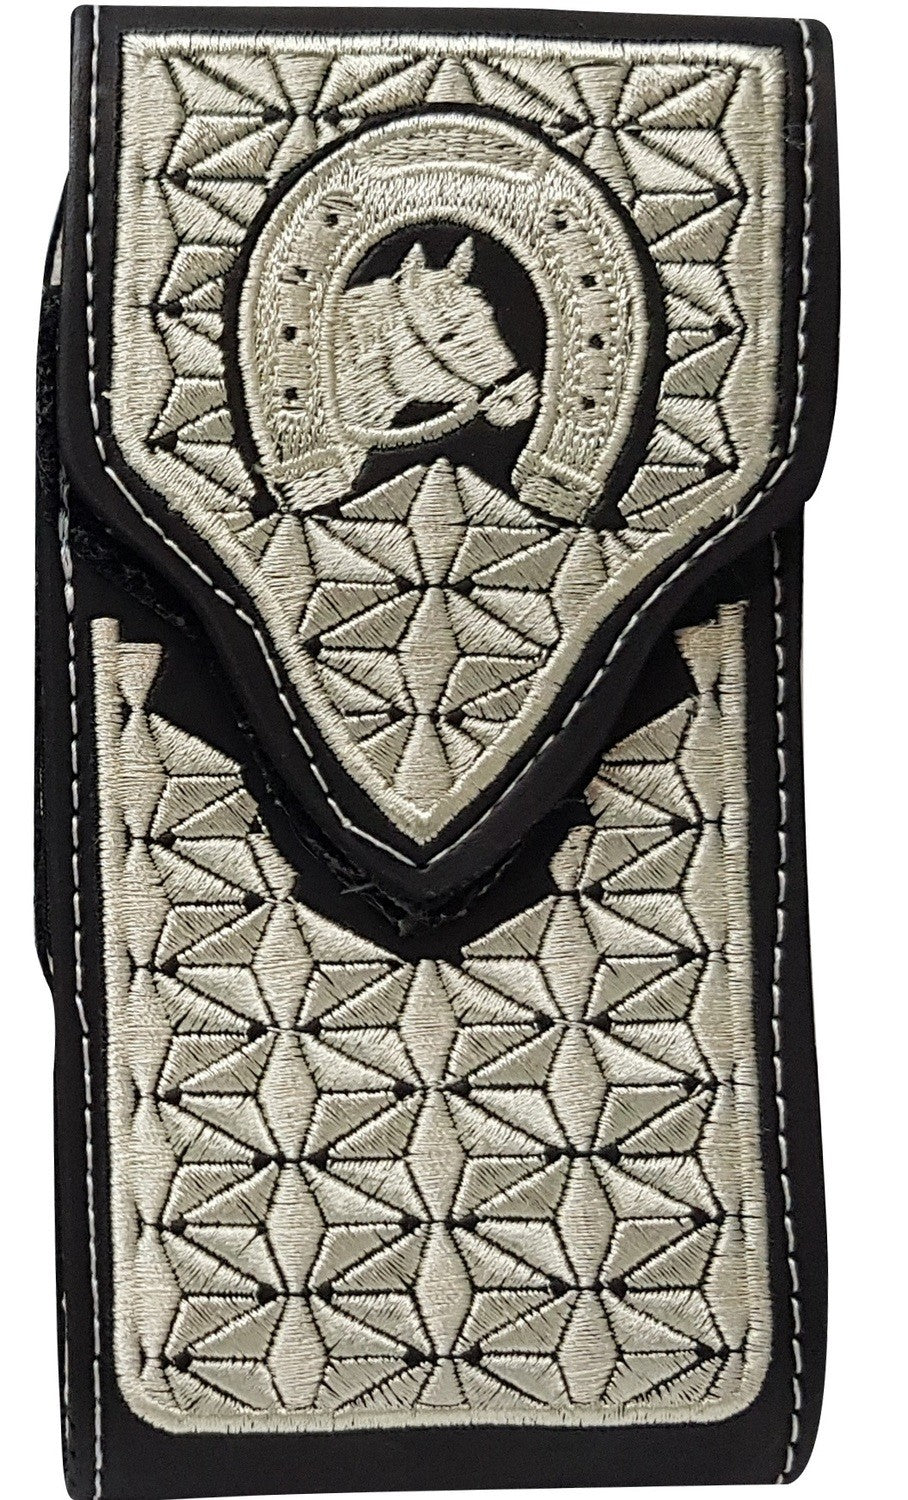 Embroidered Black Cell Phone Case